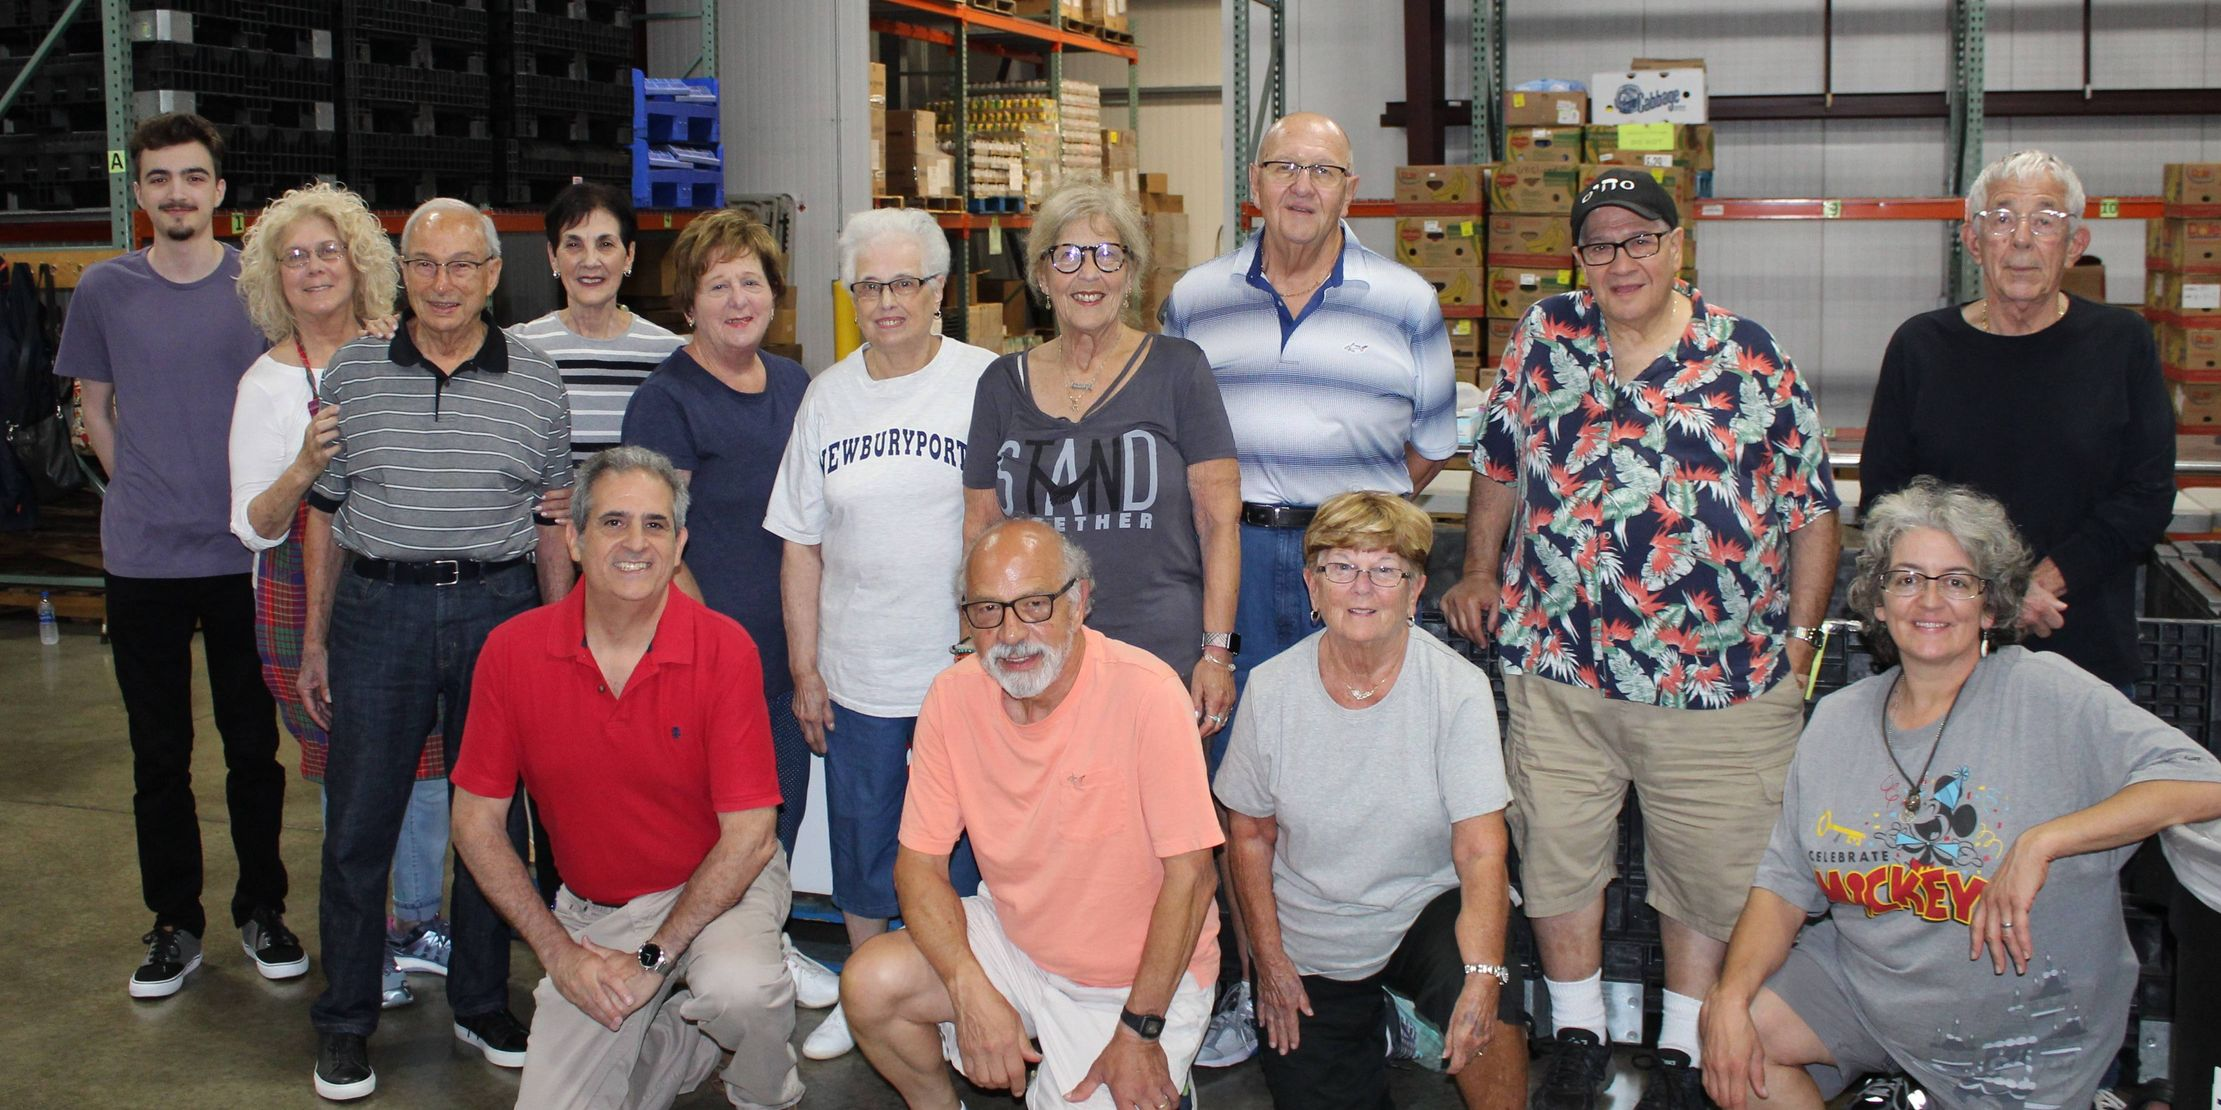 """<span class=""""slider_title"""">                                     Jewish Community Second Harvest Food Bank Volunteer Night                                </span>                                                                                                                                                                                       <span class=""""slider_description"""">Members of the local synagogues, including Congregation Rodef Sholom, volunteer at the Second Harvest Food Bank.</span>"""